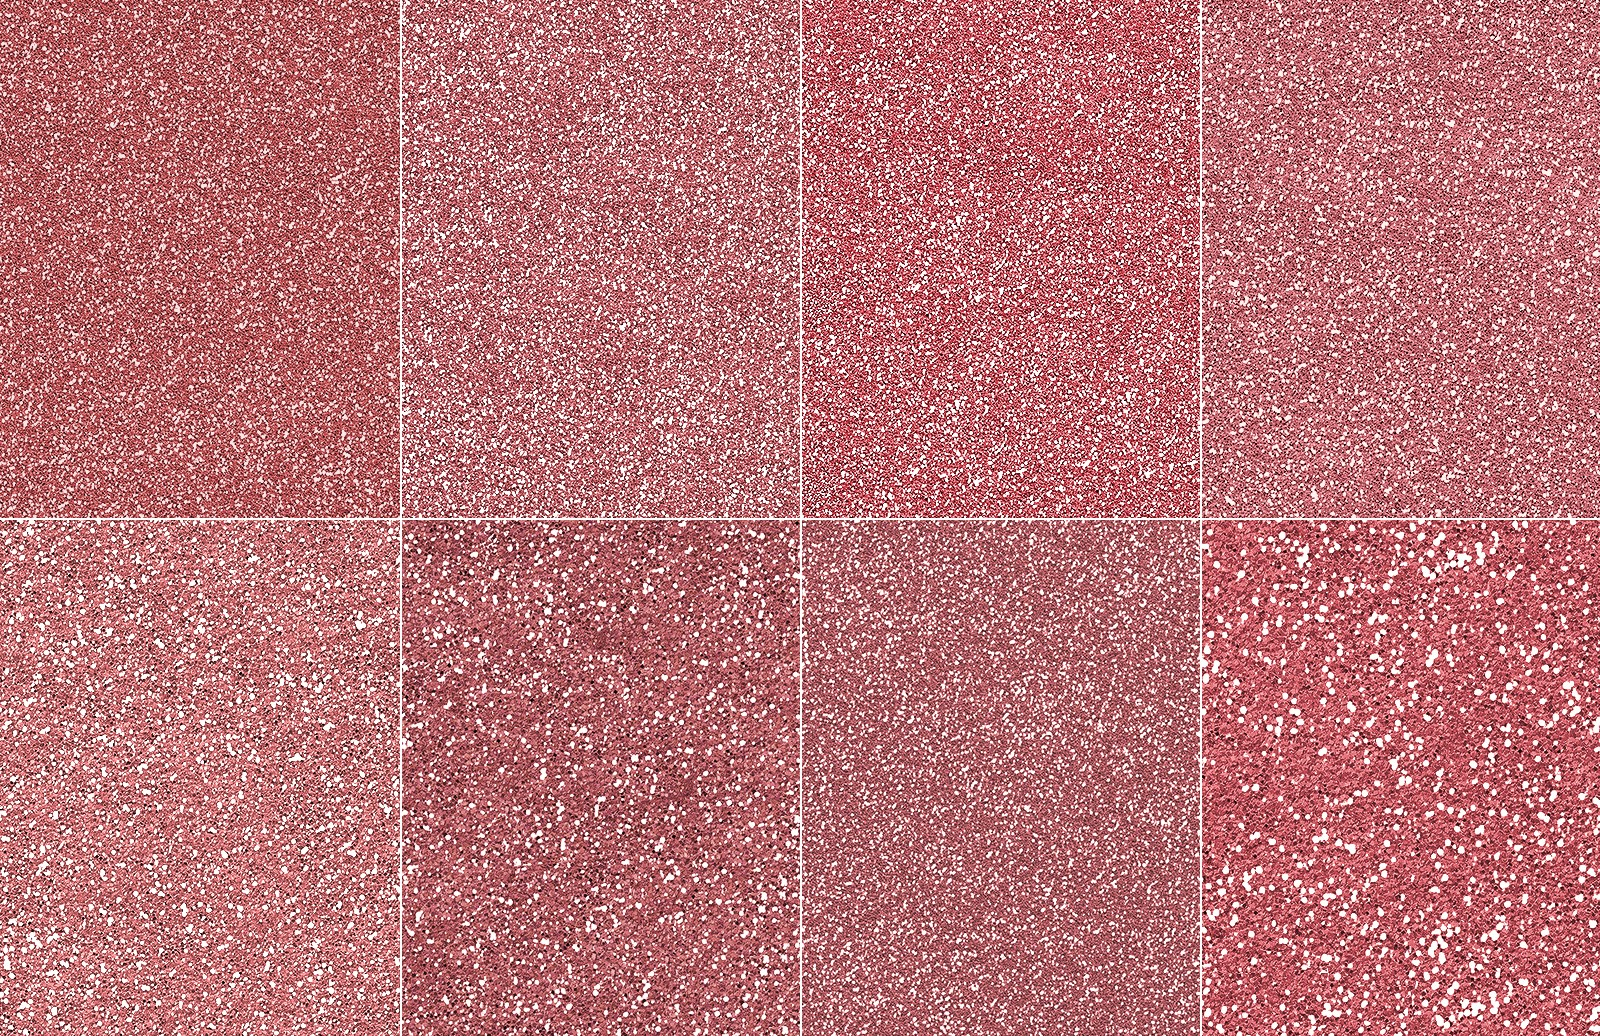 Large Seamless  Glitter  Textures  Preview 3